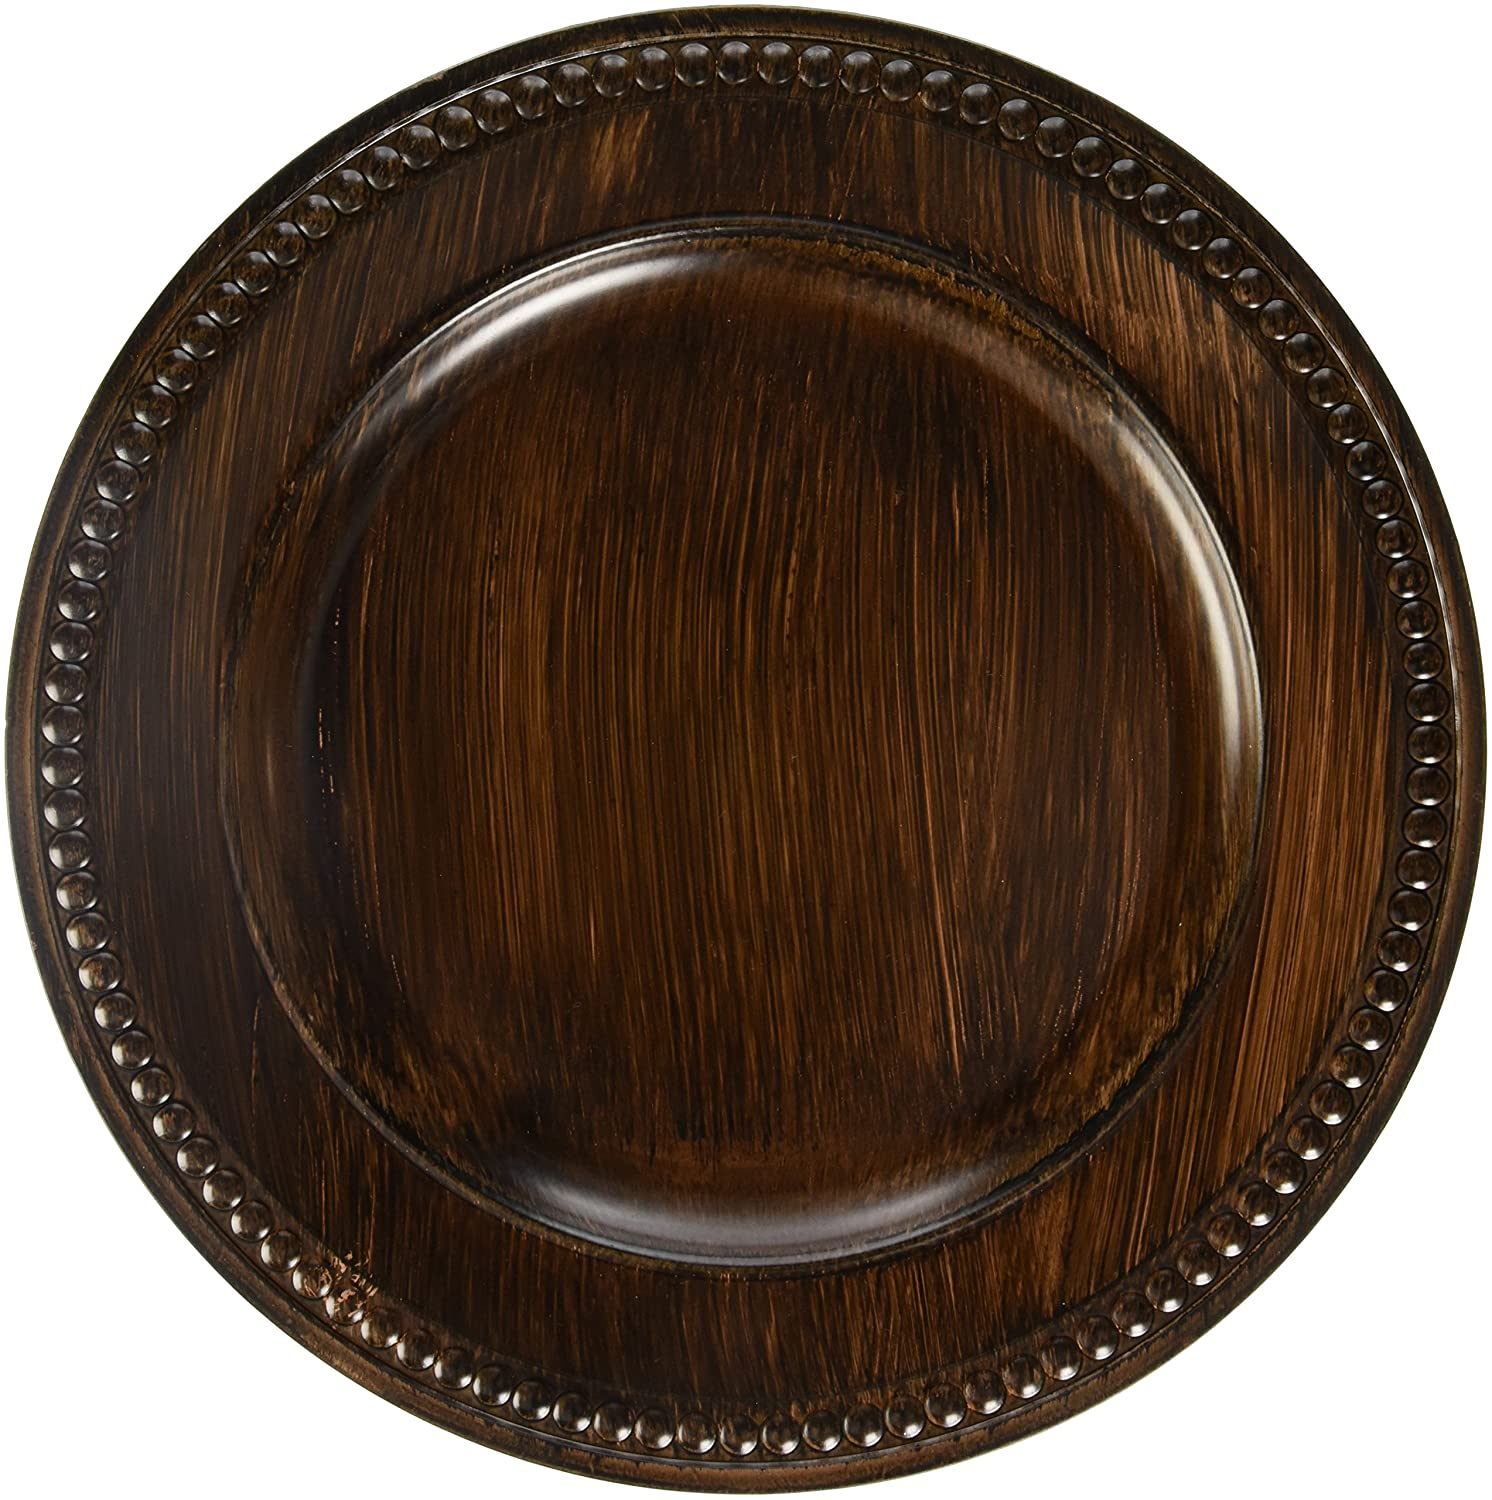 ChargeIt by Jay The Jay Companies Beaded Charger Plate, Brown 1320398